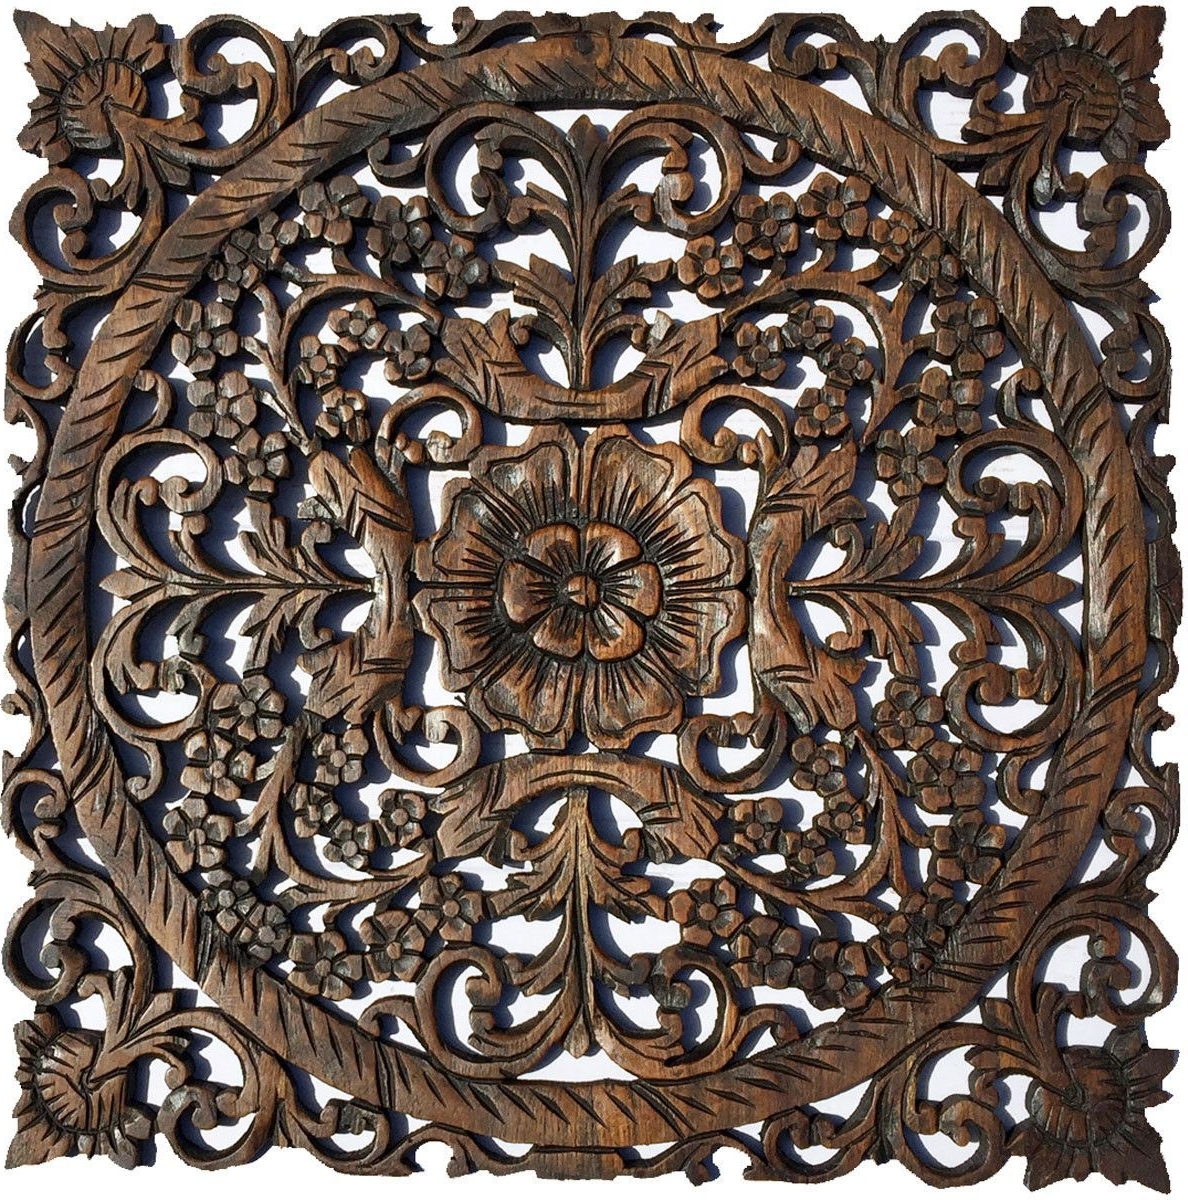 Oriental Carved Floral Wall Decor. Unique Asian Wood Wall Art (View 13 of 20)